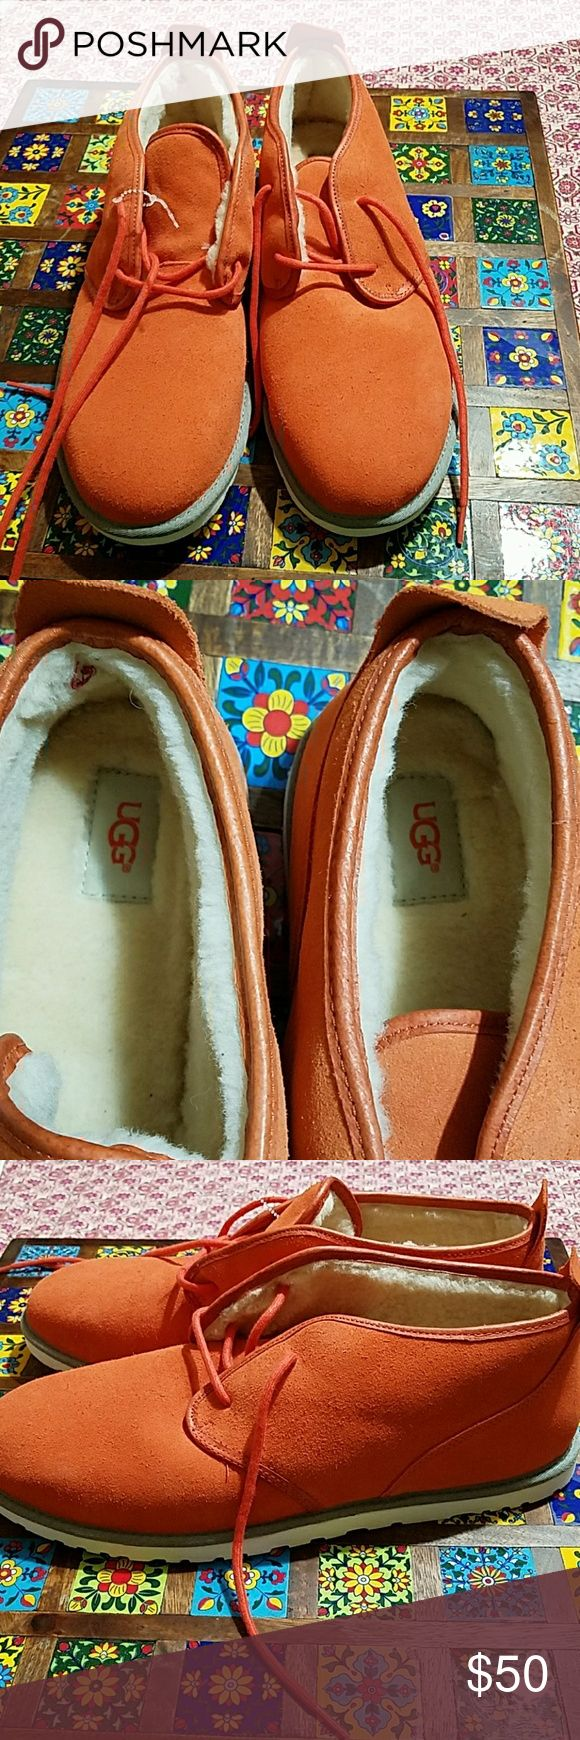 UGG MEN'S SHOES ORANGE IN COLOR BRAND NEW WITHOUT TAGS SIZE 15  ALSO SIZE 18 UGG Shoes Chukka Boots